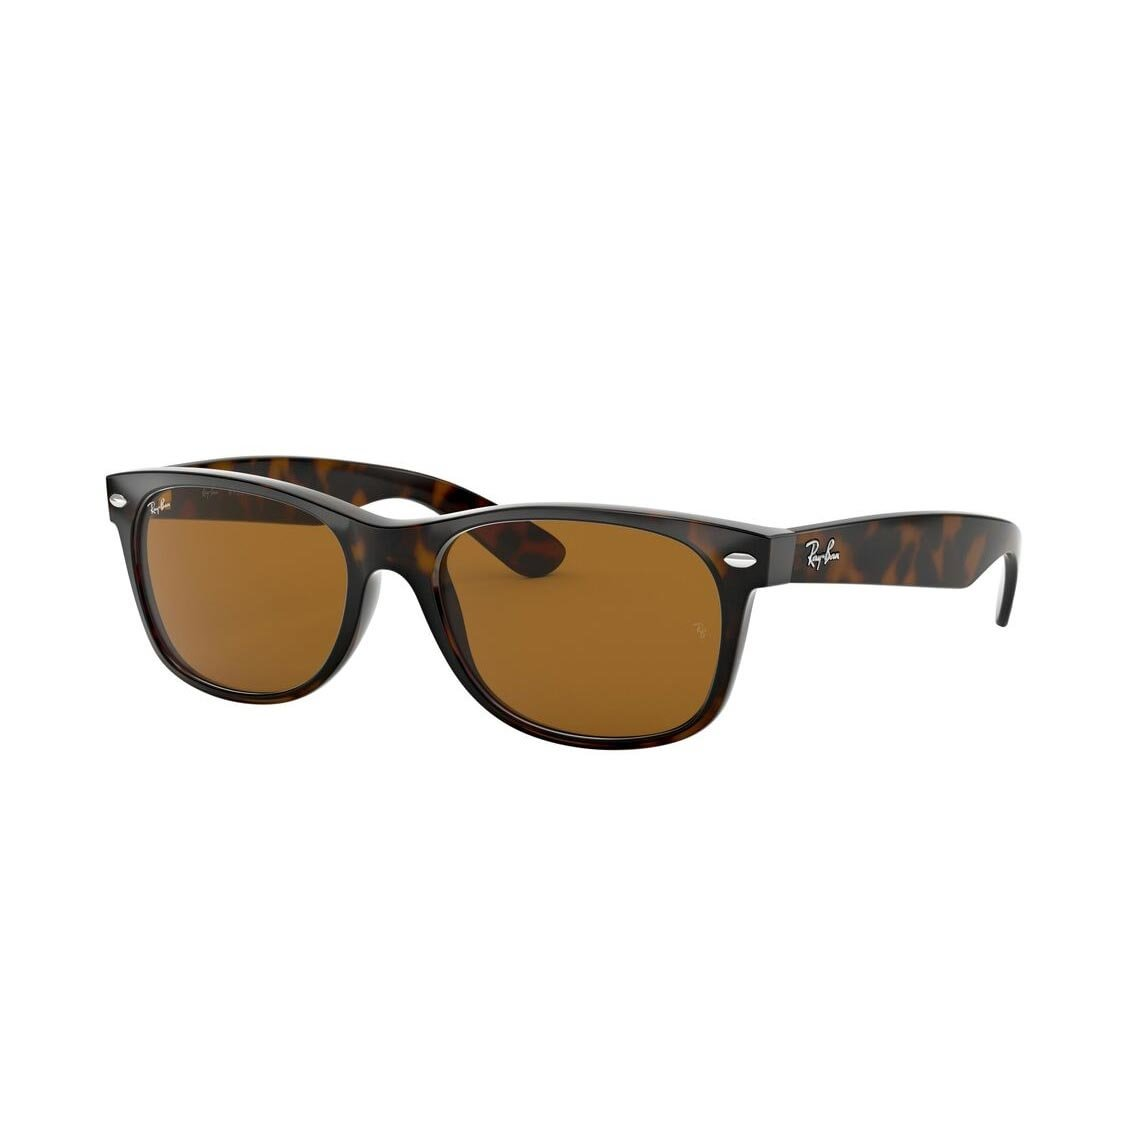 Ray-Ban New Wayfarer RB2132 710 55